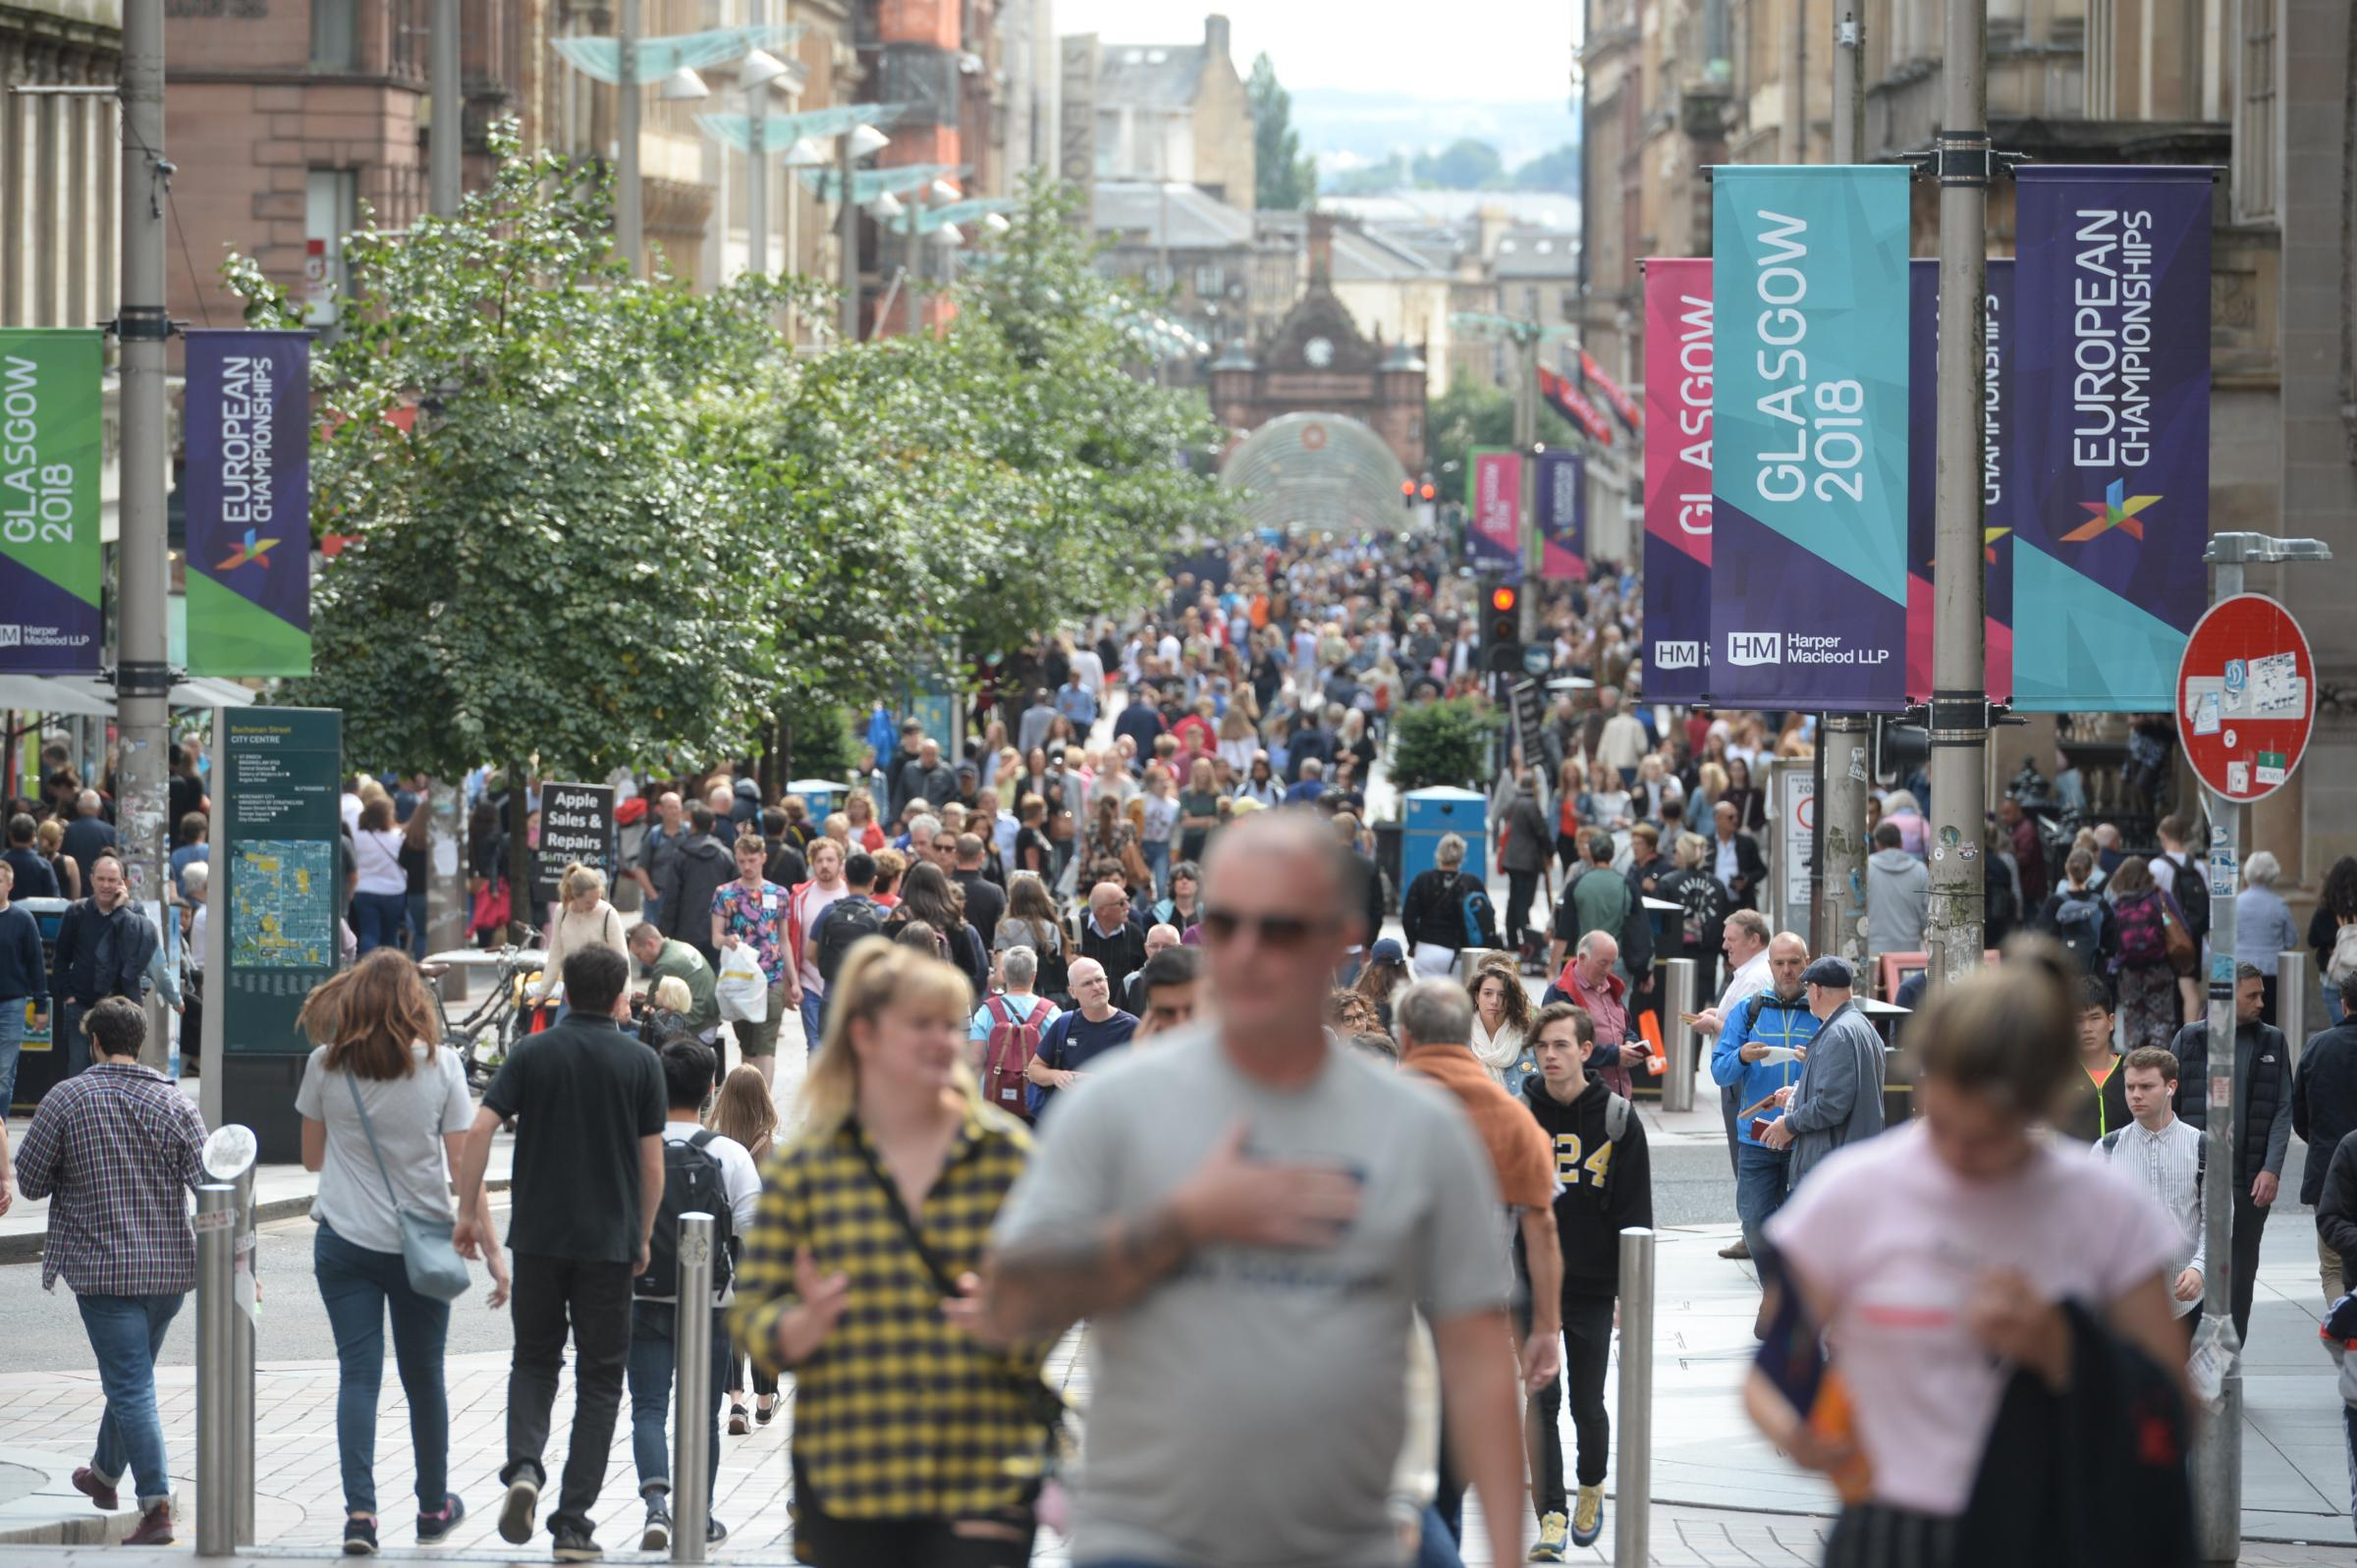 Experts have criticised proposed changes to the Scottish census.